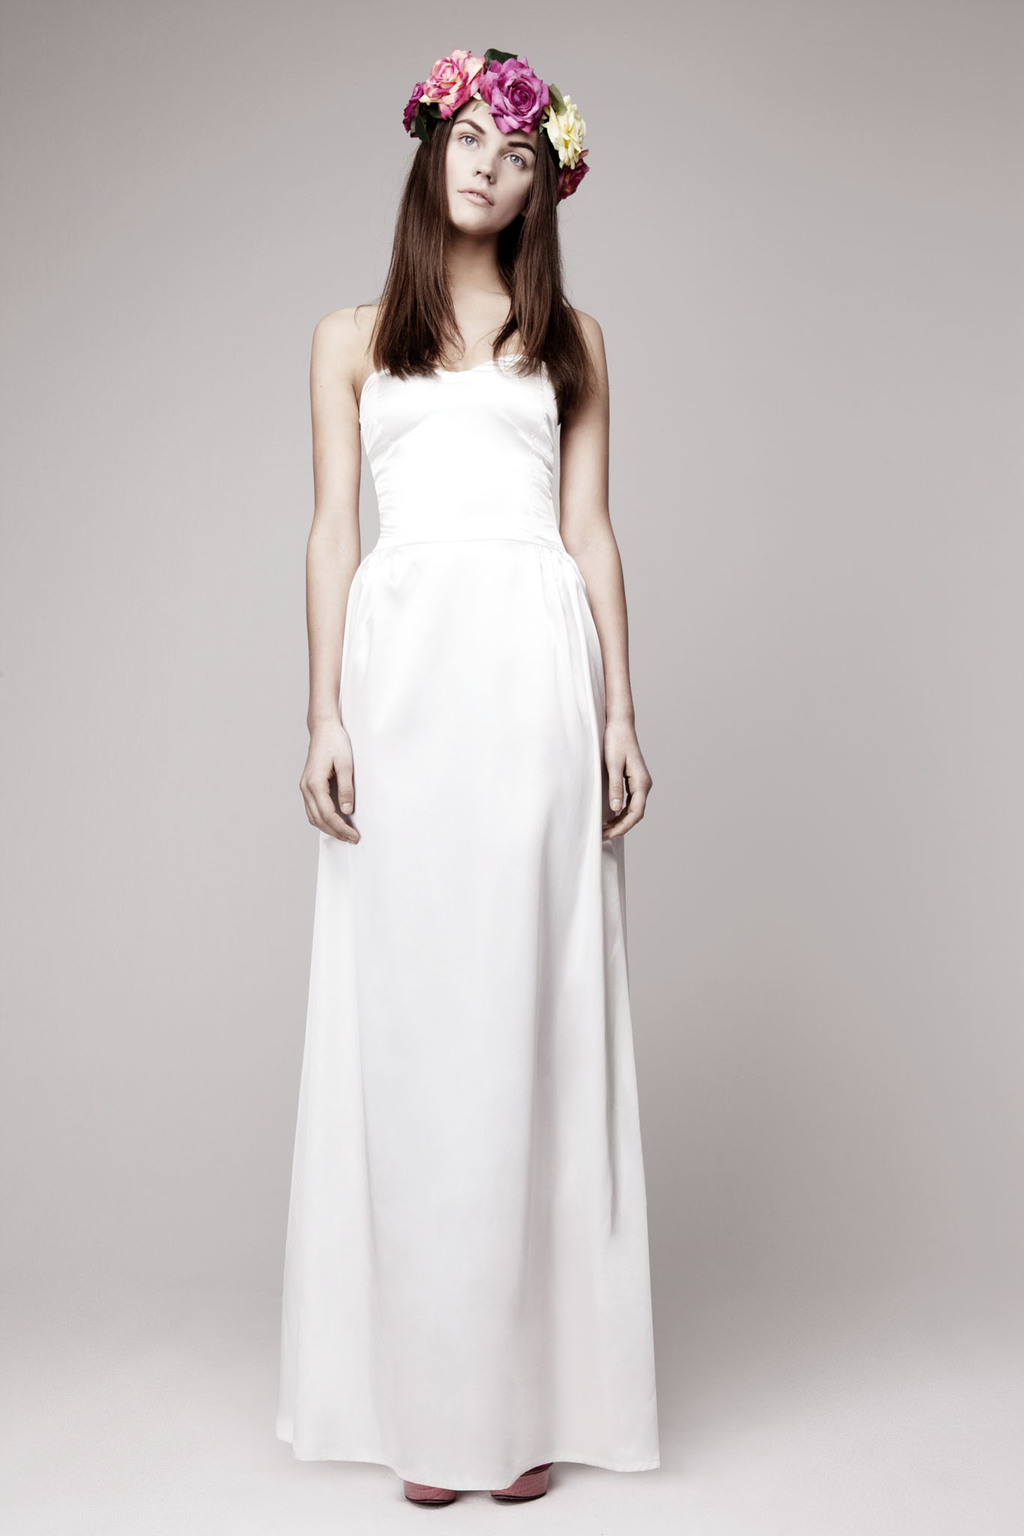 Simple wedding dress for vintage or modern brides 4 for Chic modern wedding dresses